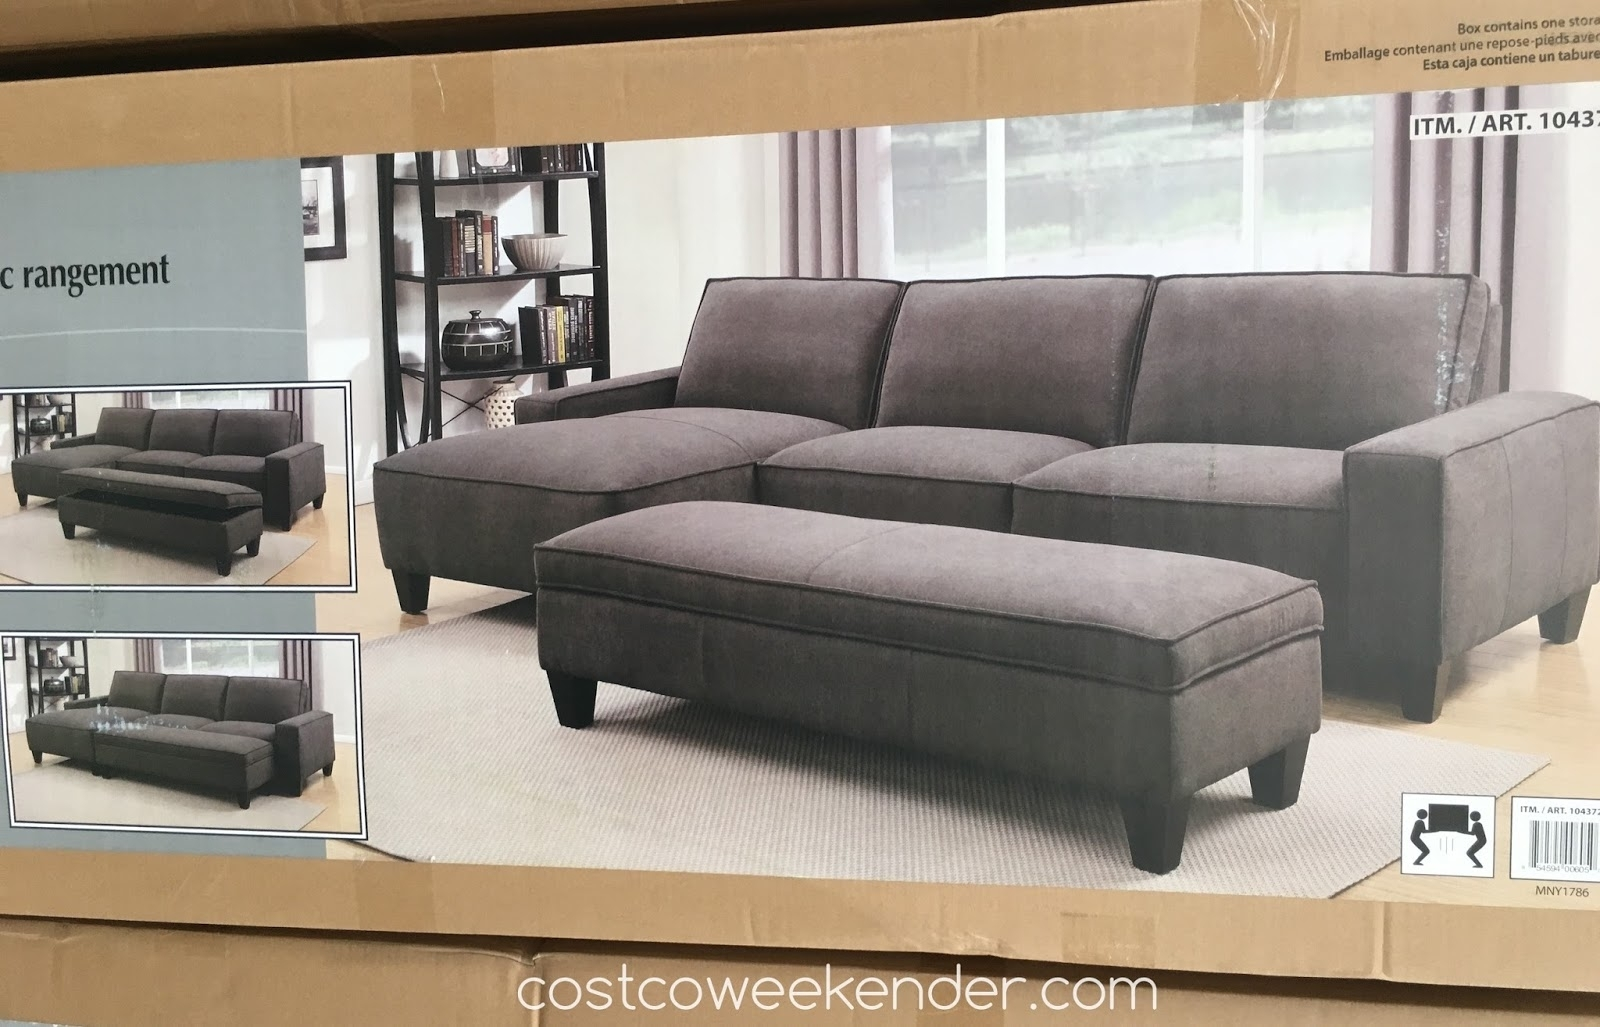 Sectional Sofa Design: Sectional Sofa With Chaise Costco Ikea For Sectional Sofas With Chaise And Ottoman (View 7 of 10)